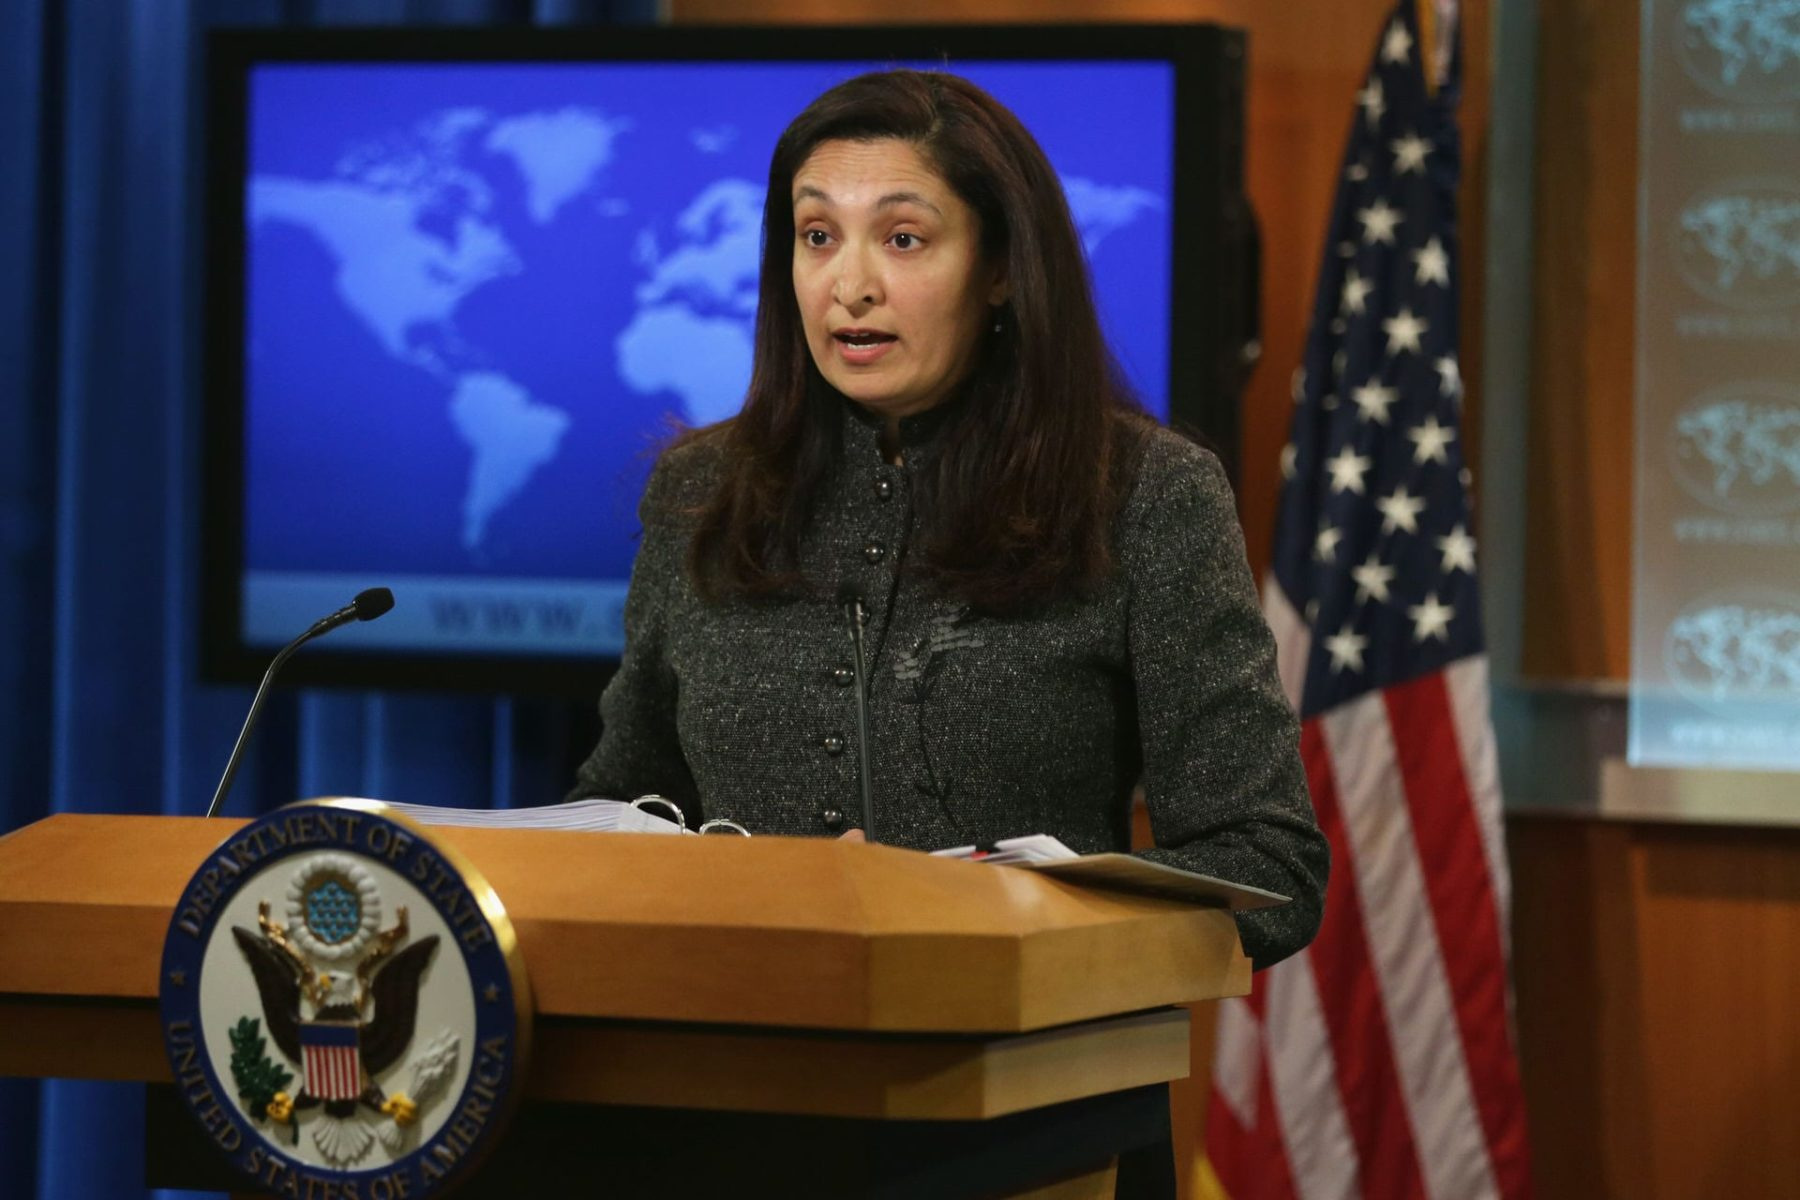 Acting Assistant U.S. Secretary of State for Bureau of Democracy, Human Rights and Labor Uzra Zeya speaks at a podium.